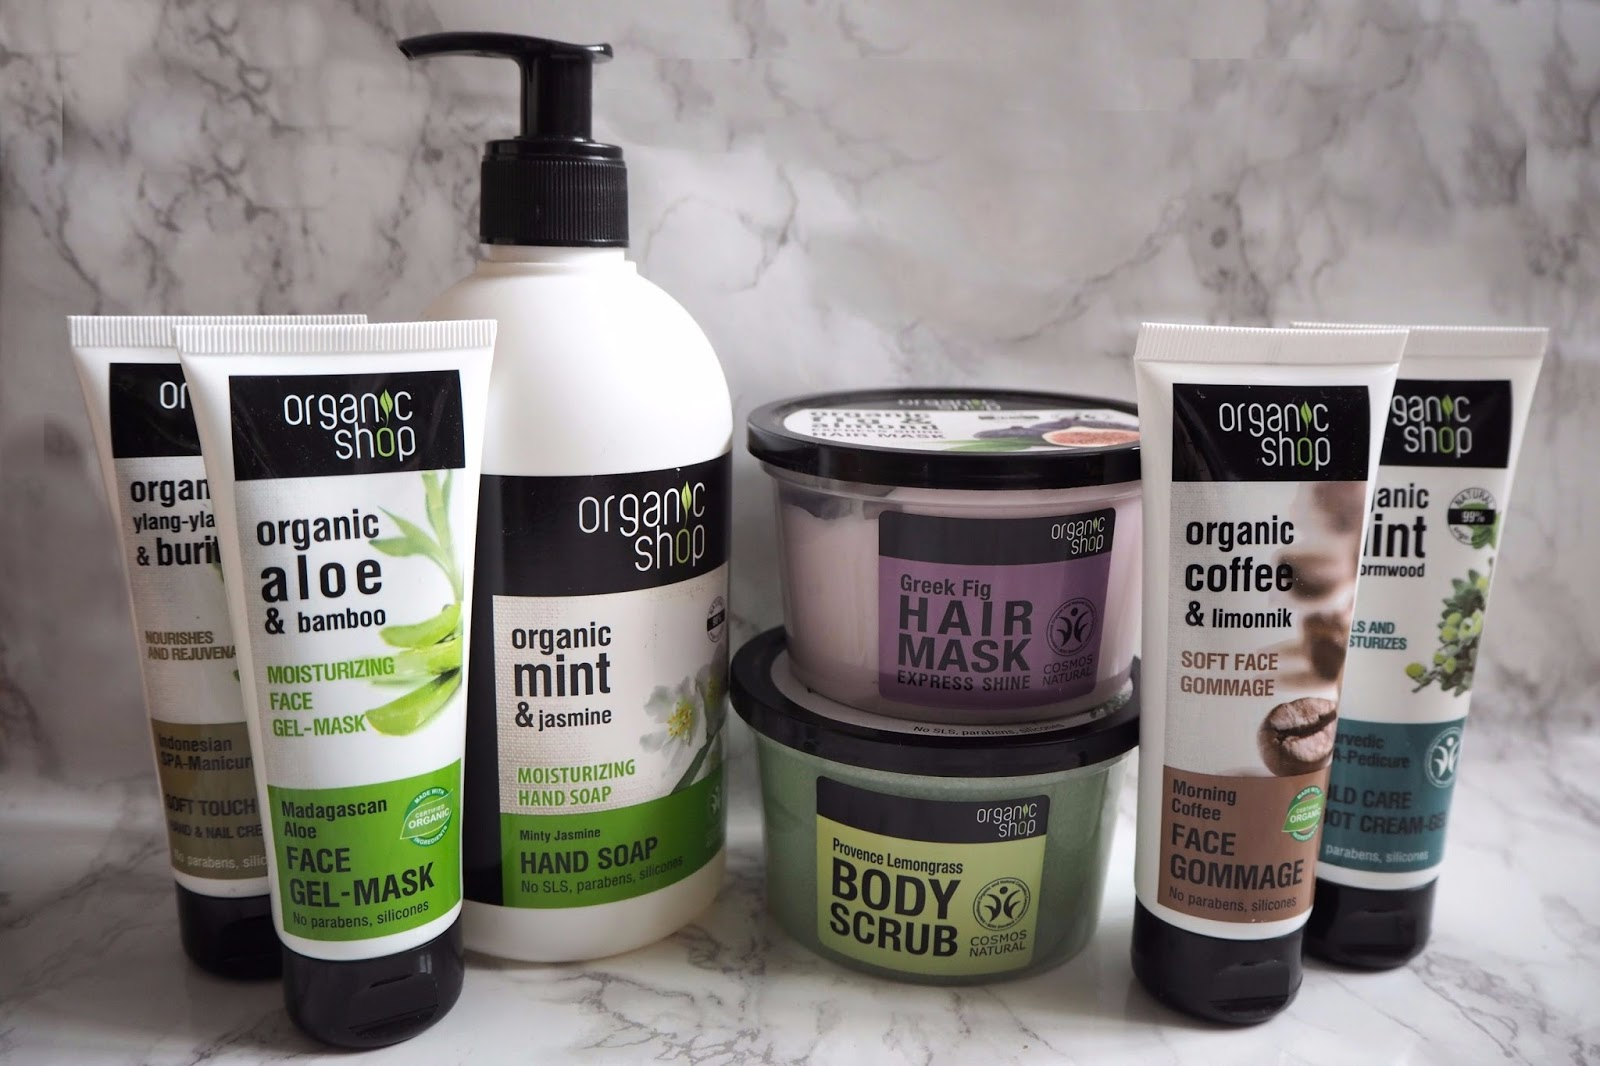 The Organic Shop Products